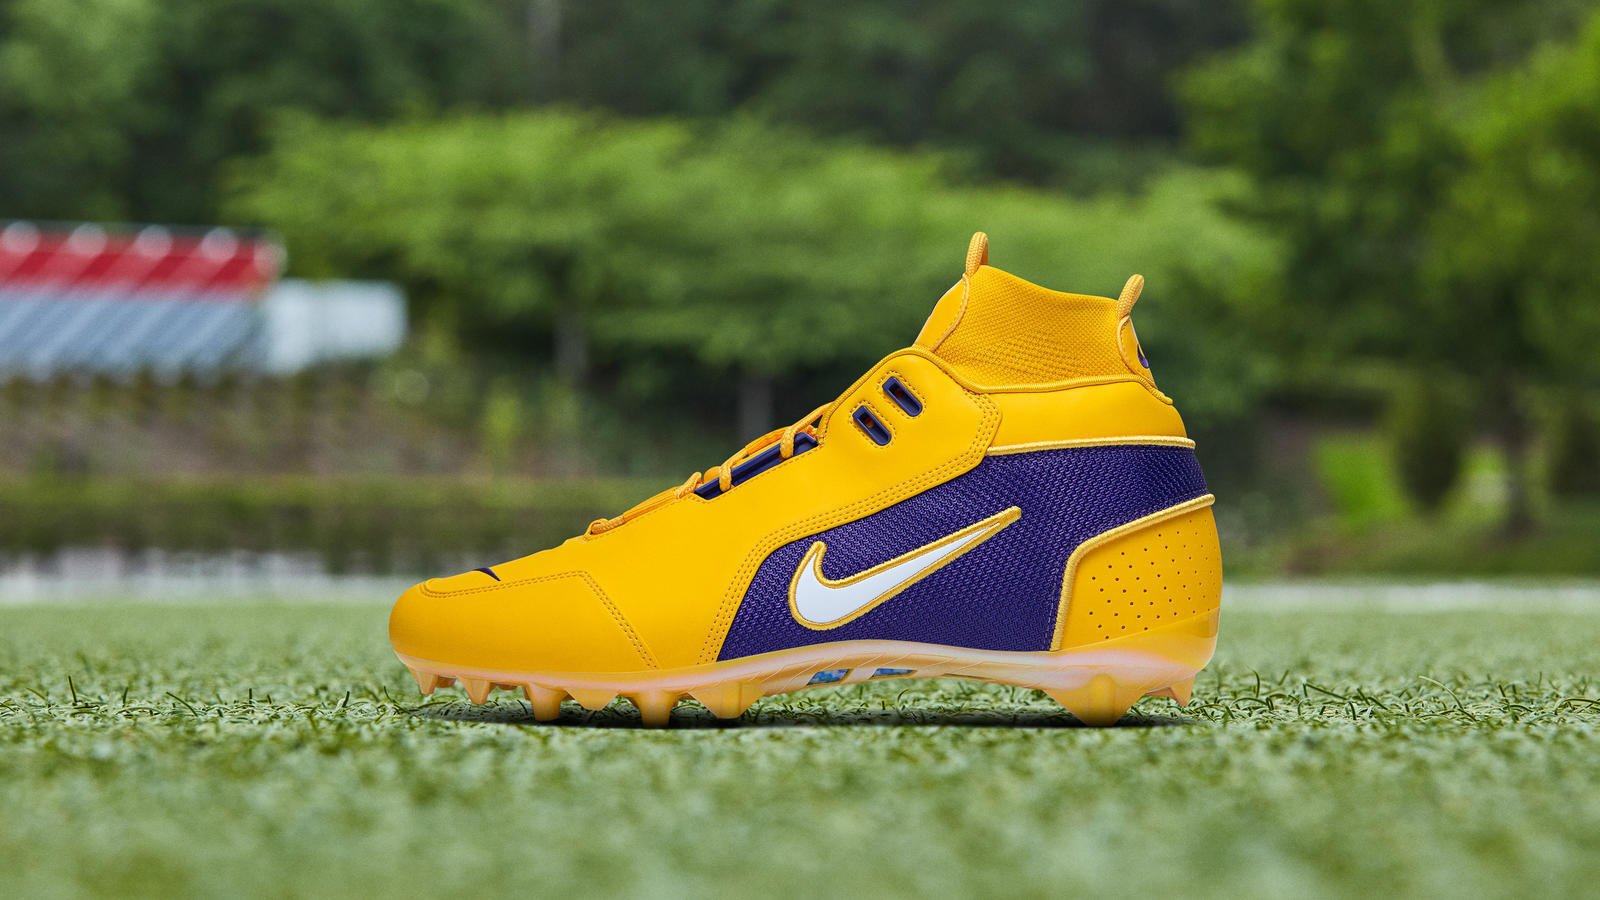 nike-odell-beckham-jr.-pregame-cleats-2019-season-week-15